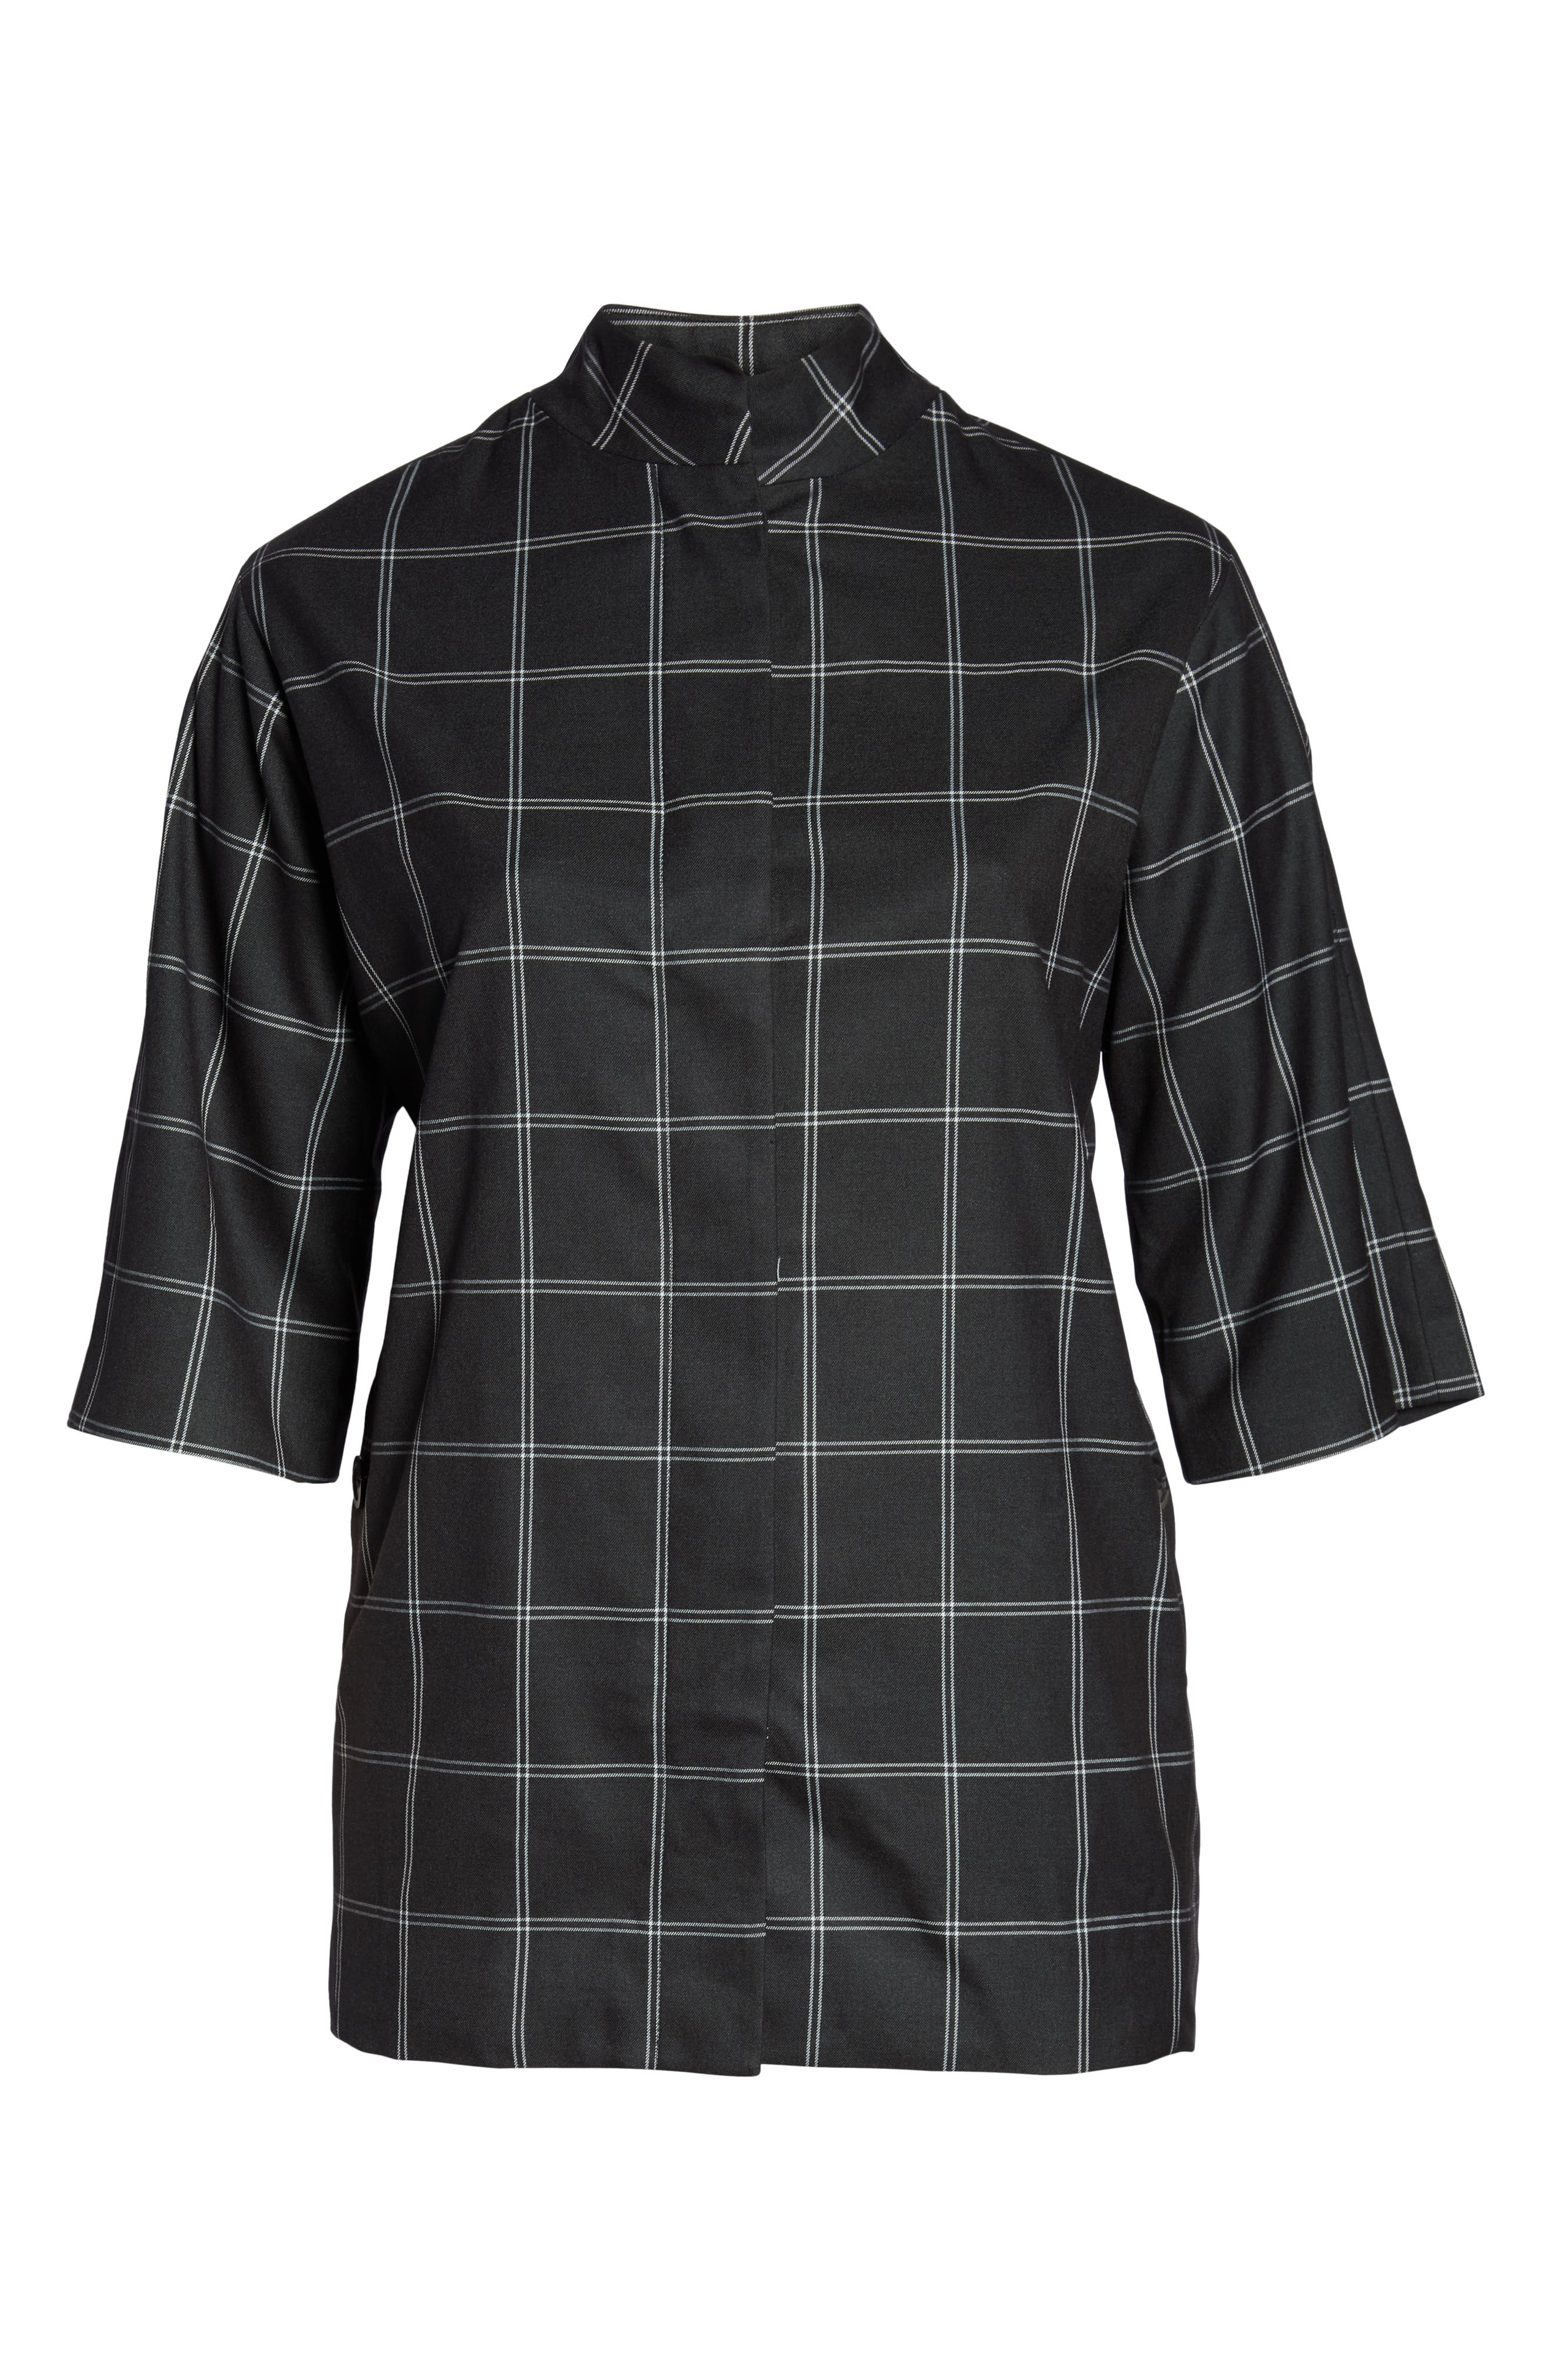 Windowpane Topper Jacket,                             Alternate thumbnail 6, color,                             GREY TWILL PLAID